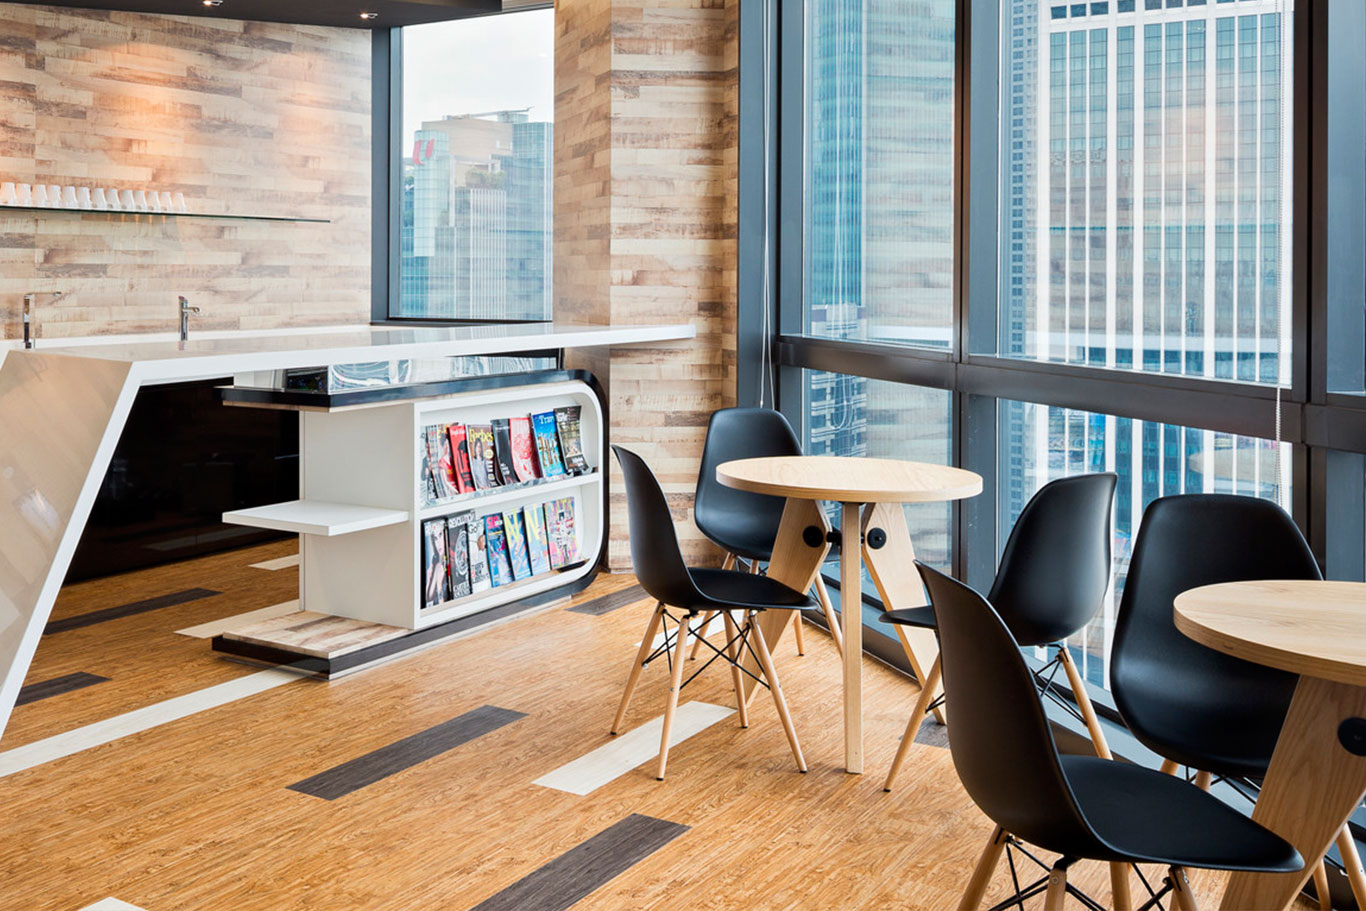 Private Office with 5 desks at PWC Building, Singapore